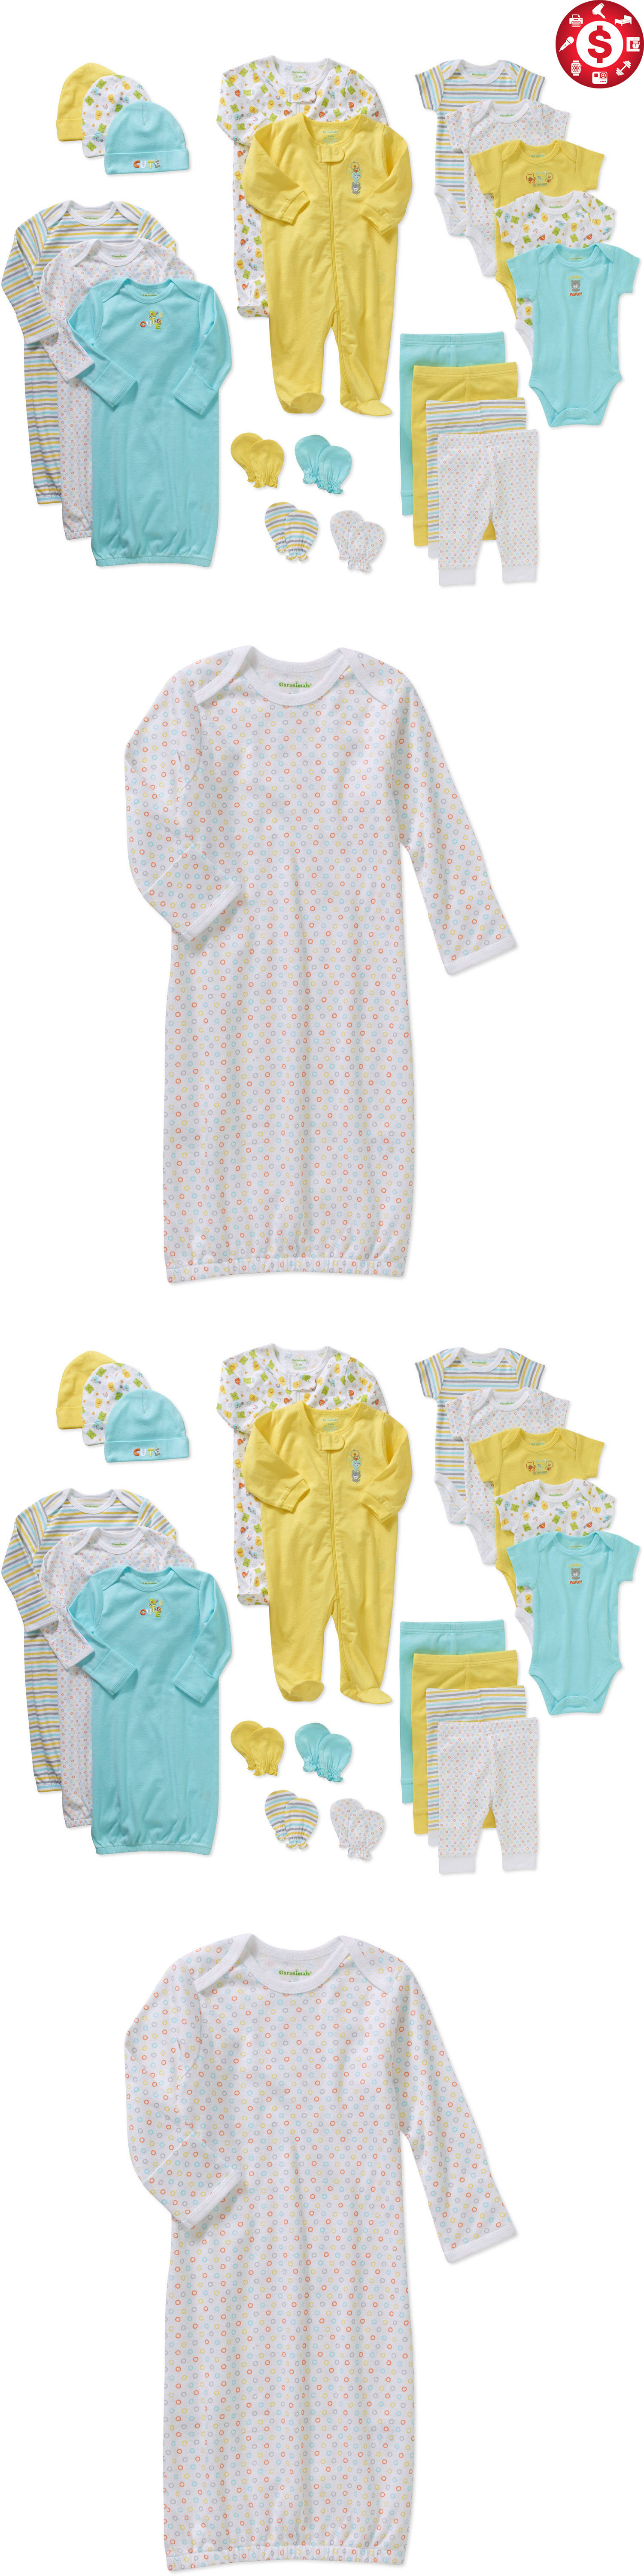 Outfits And Sets 147333 Newborn Baby Boy Clothes Set 0 3 Months